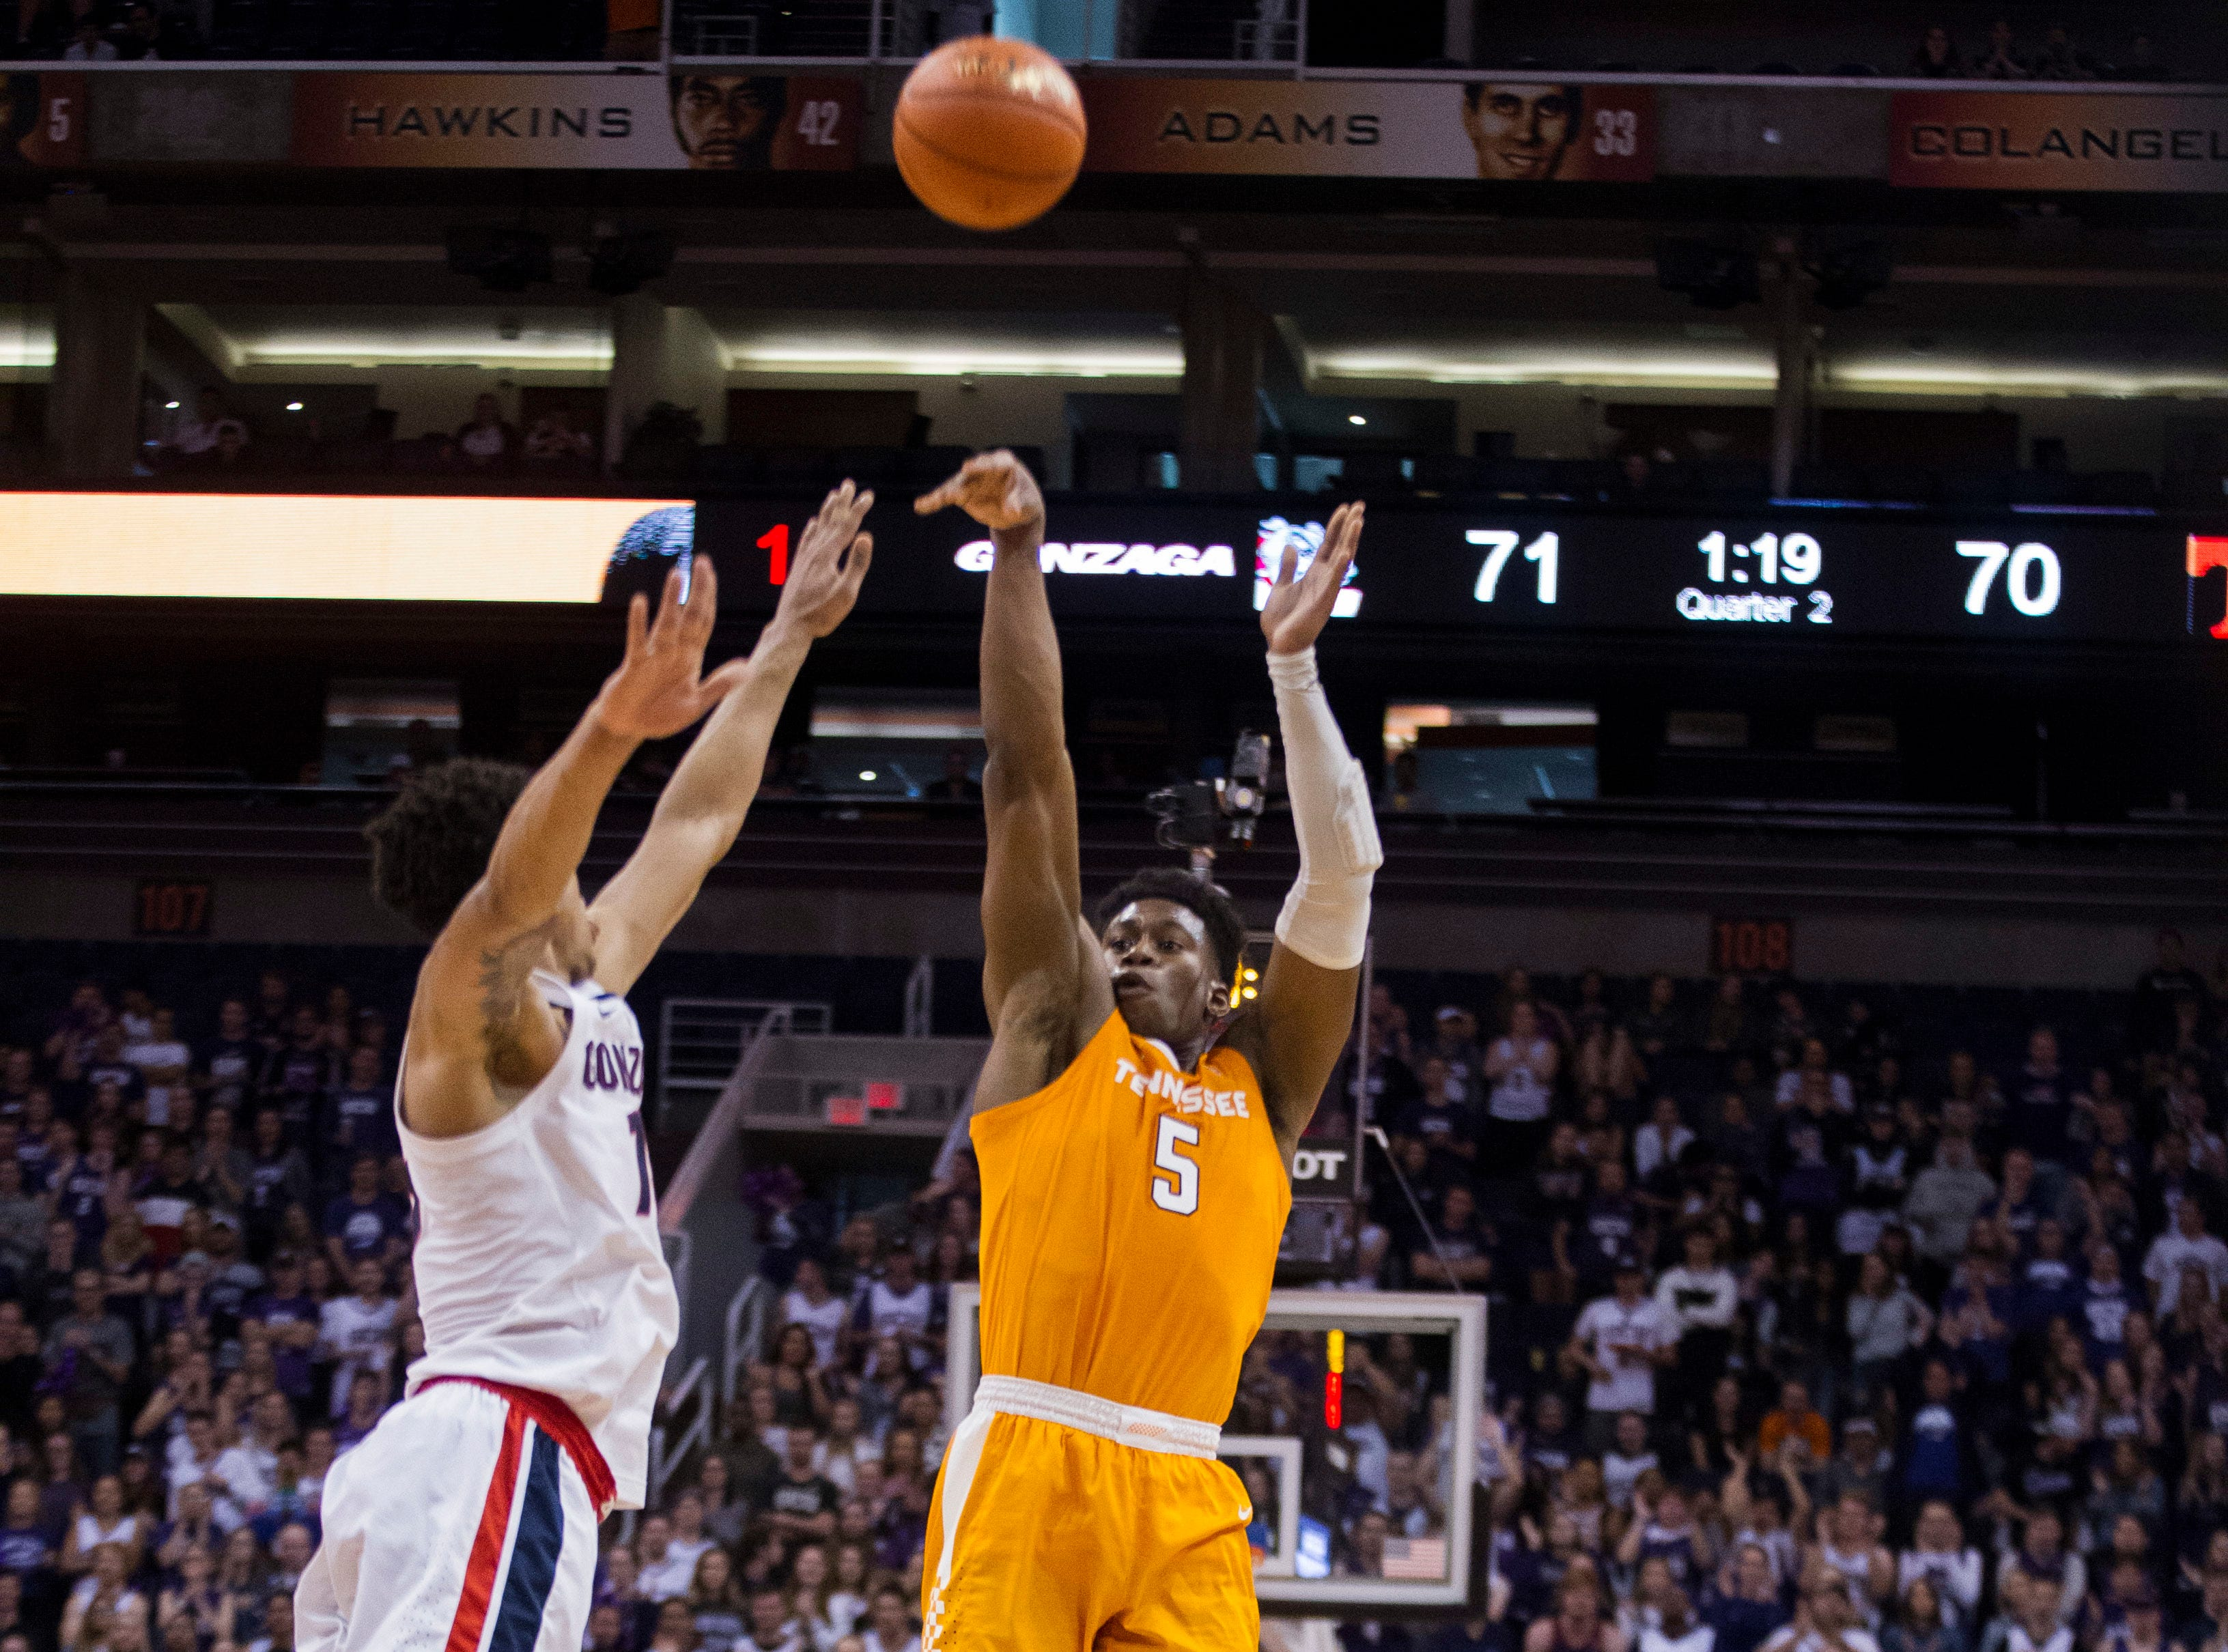 Tennessee's Admiral Schofield (5) puts up a go-ahead shot against Gonzaga's Brandon Clarke (15) during the second half of an NCAA college basketball game Sunday, Dec. 9, 2018, in Phoenix.